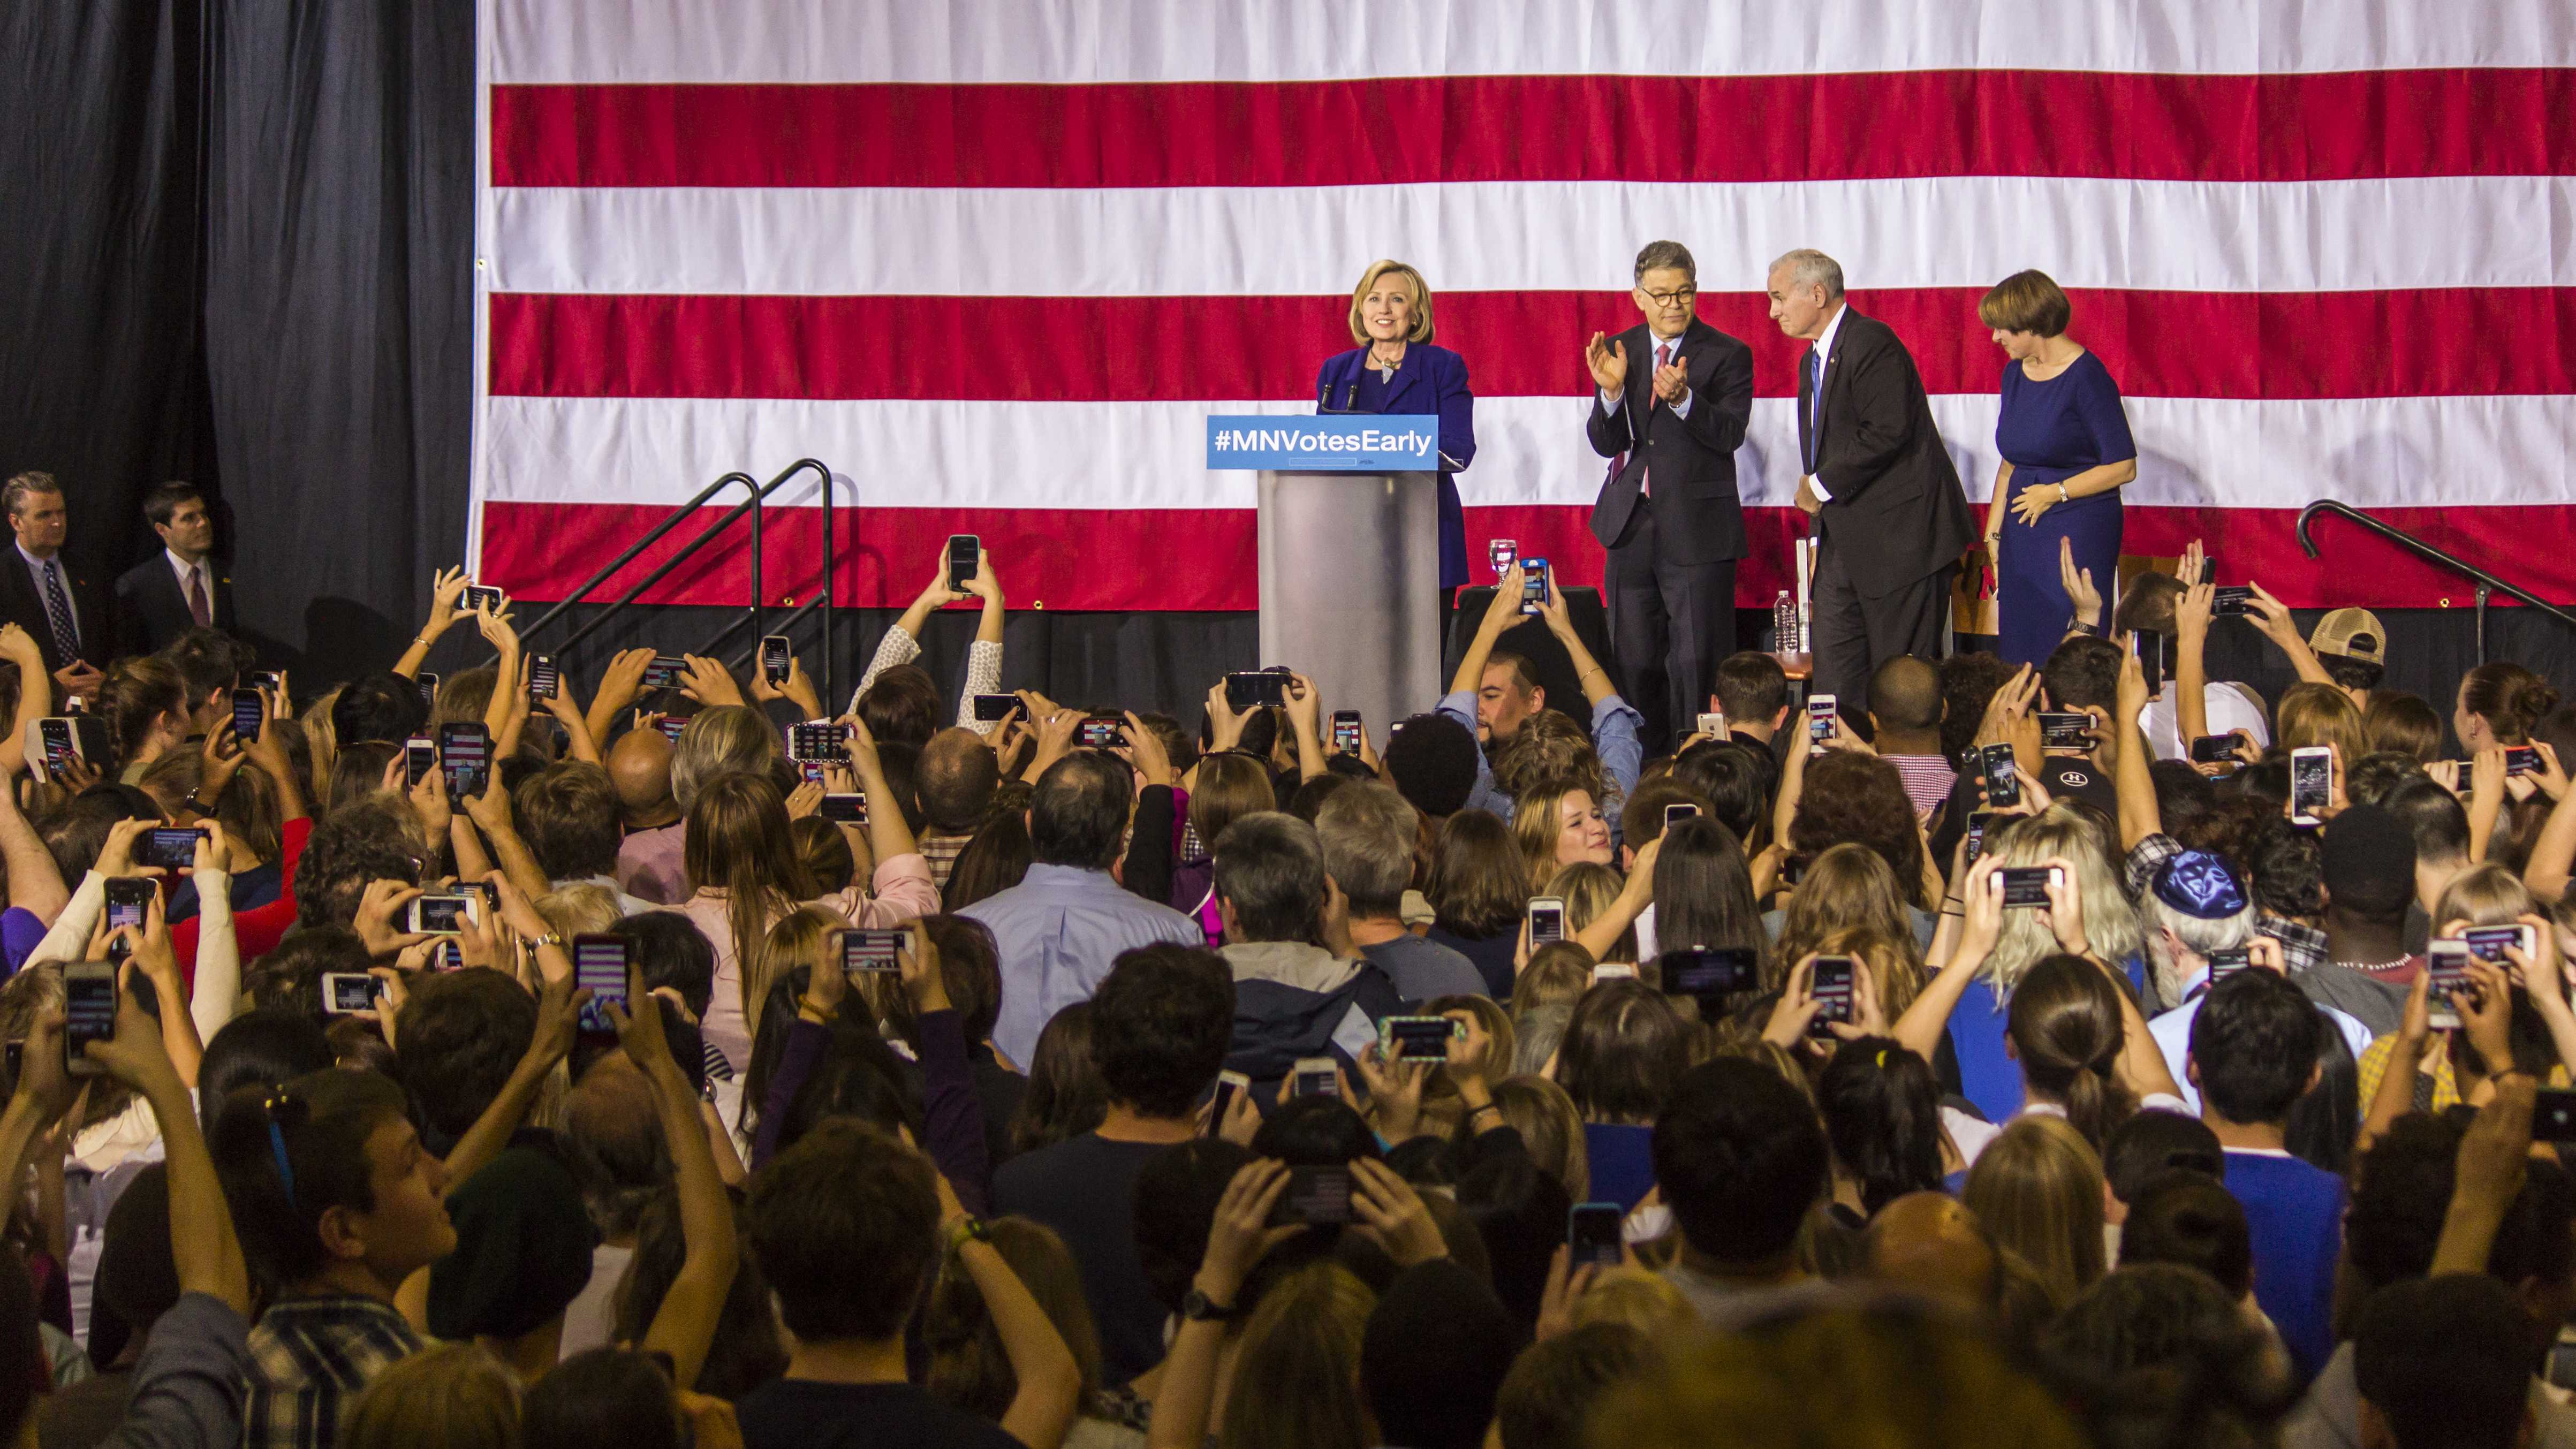 Hillary Clinton campaigns for Franken, Dayton at DFL rally